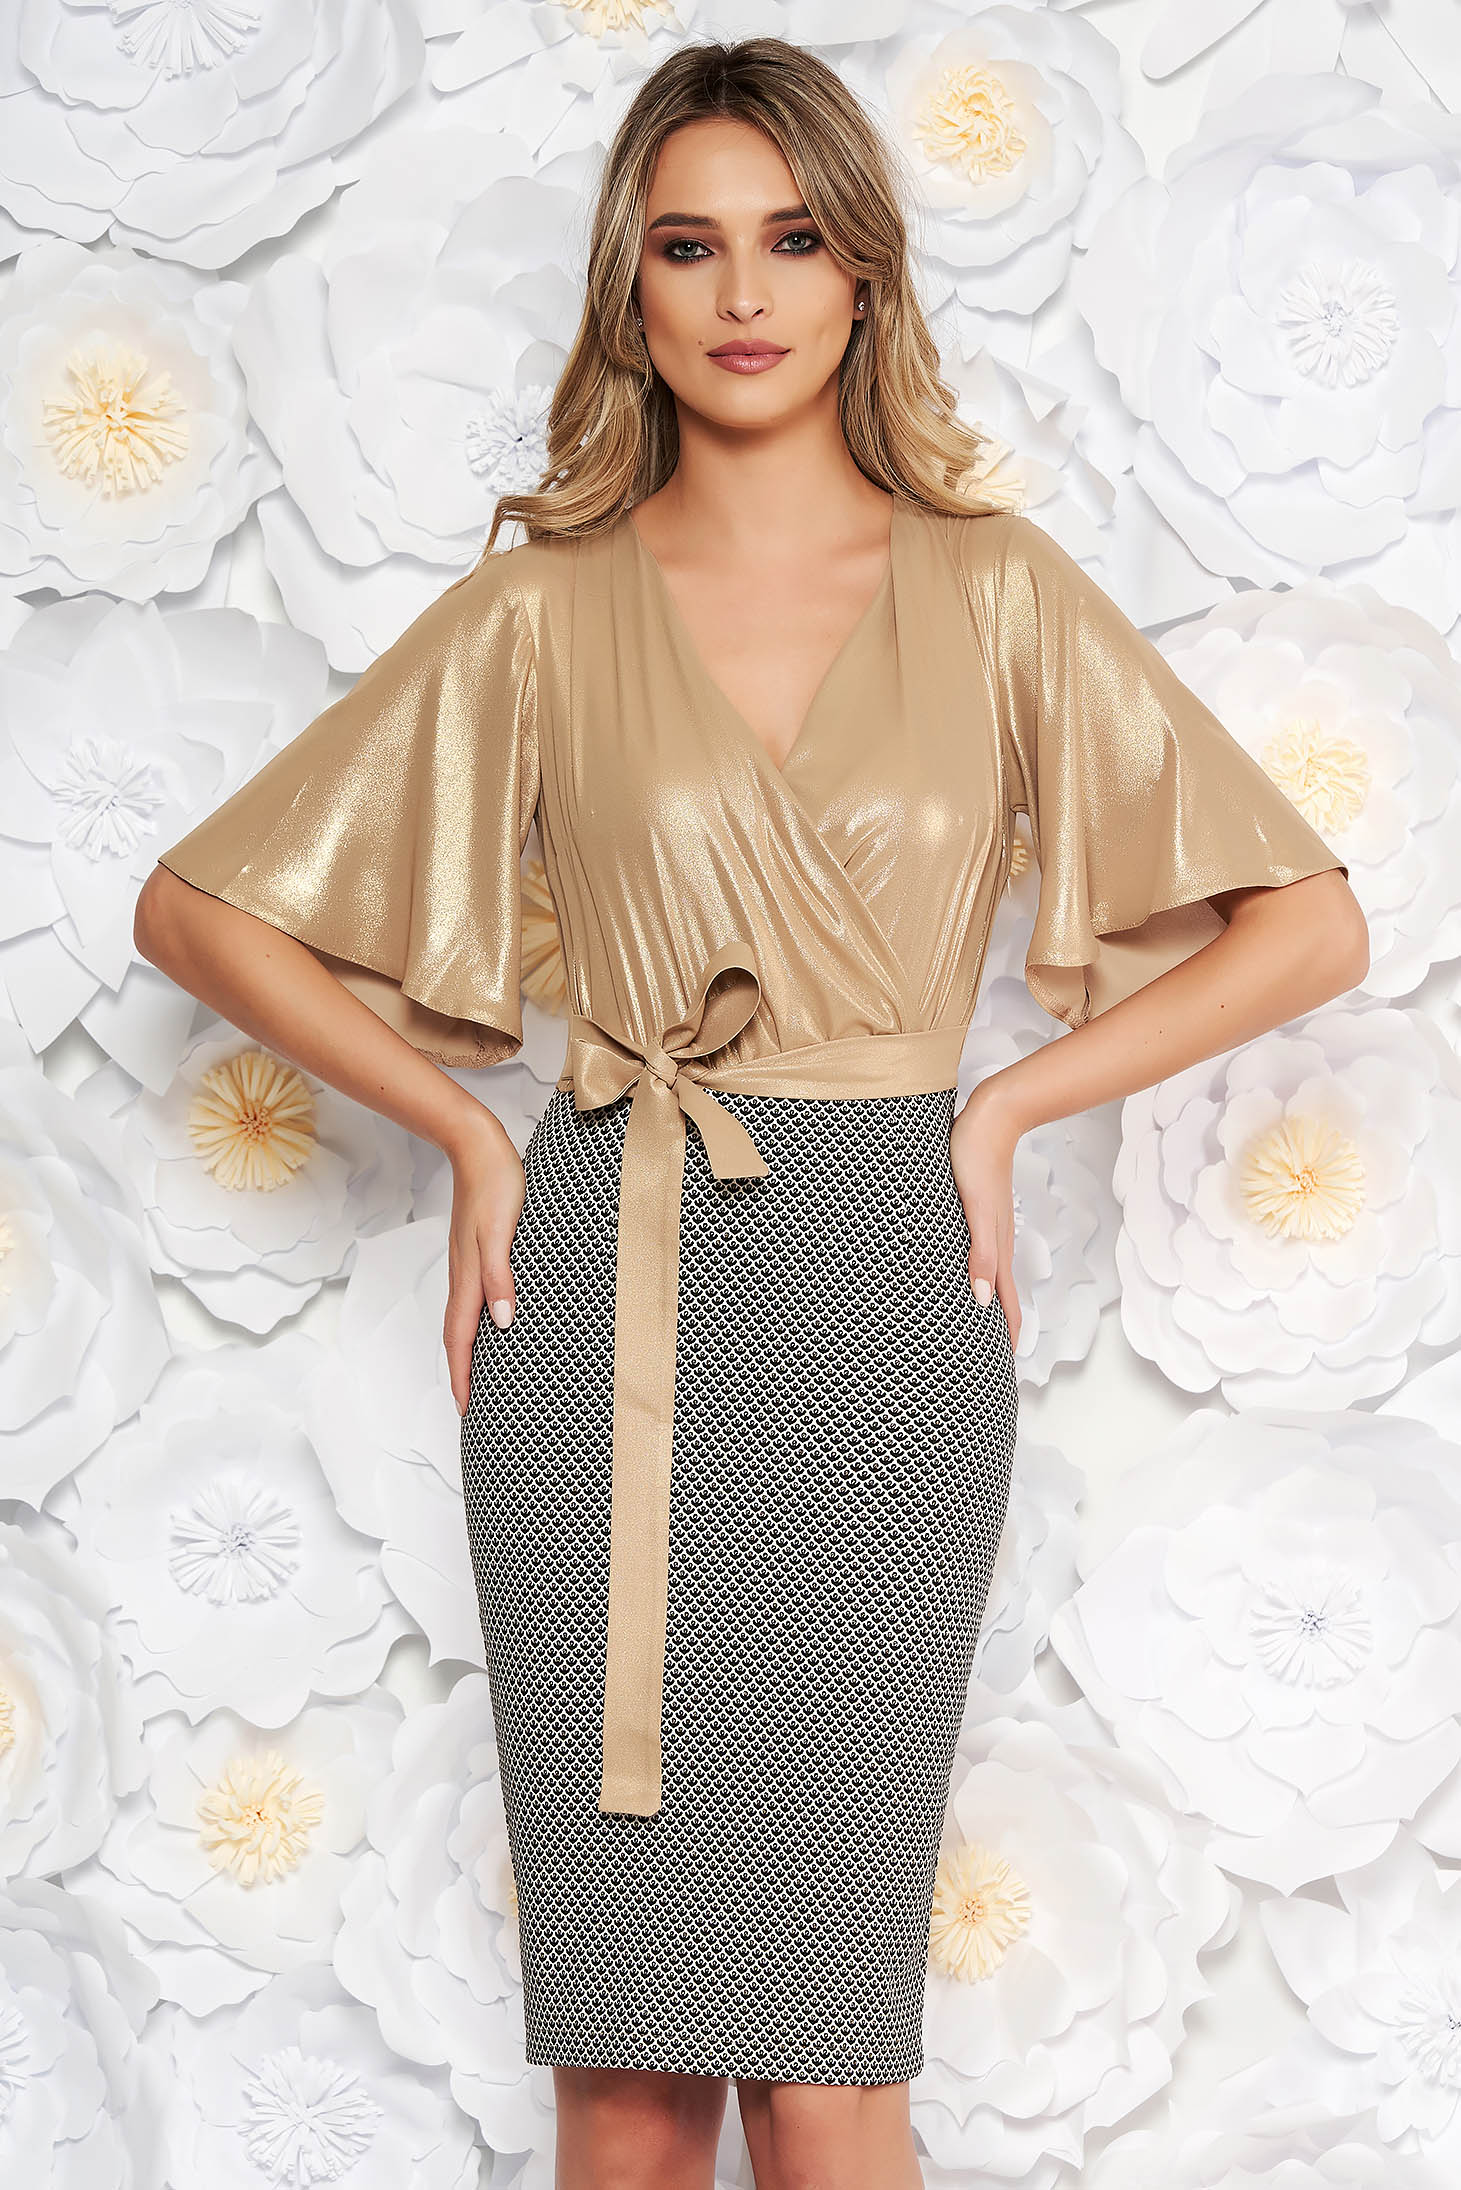 StarShinerS gold occasional pencil dress from shiny fabric accessorized with tied waistband